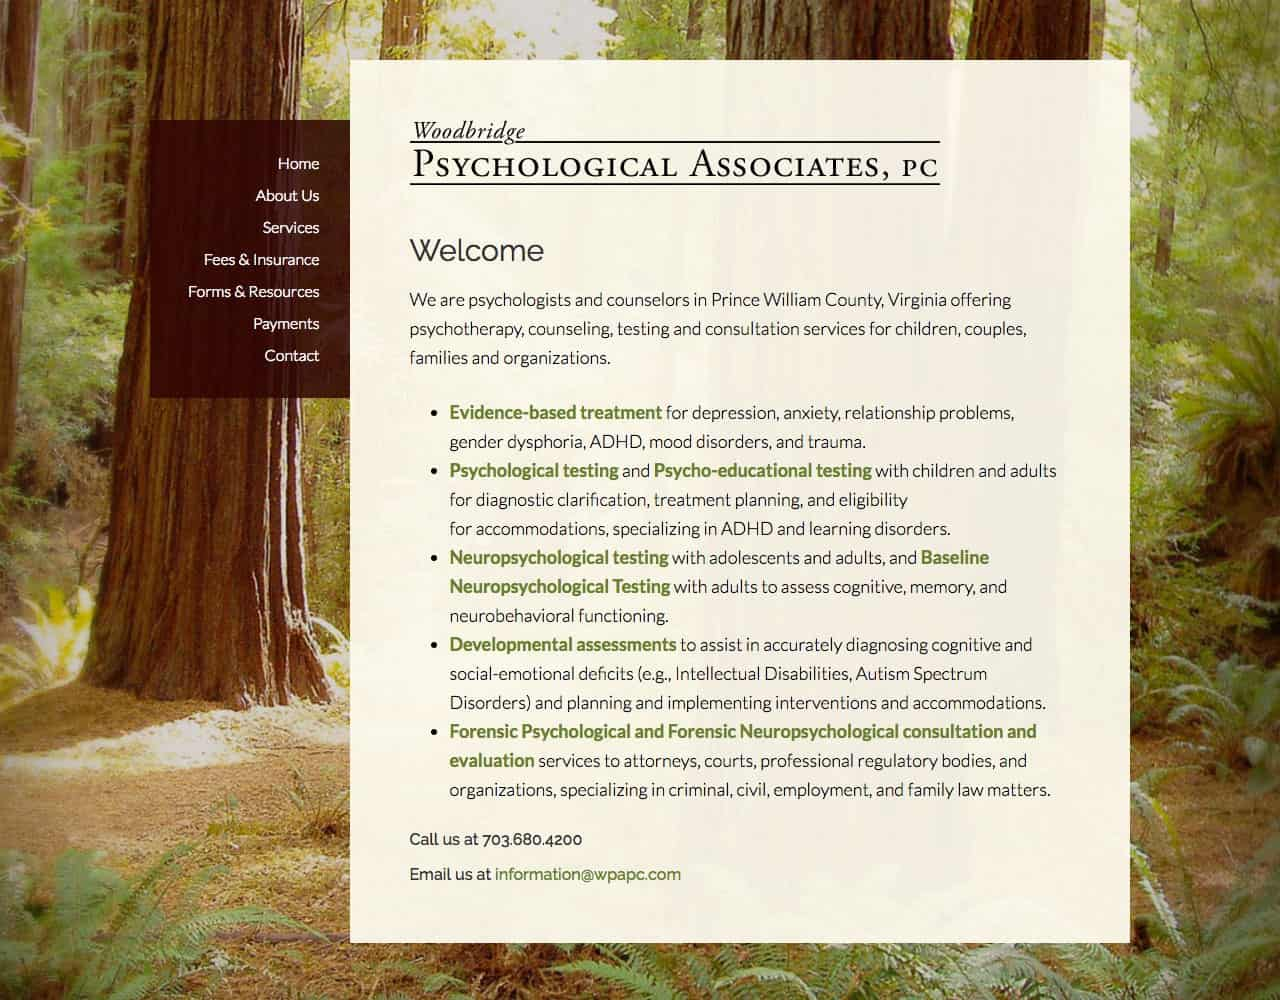 Woodbridge Psychological Associates, PC